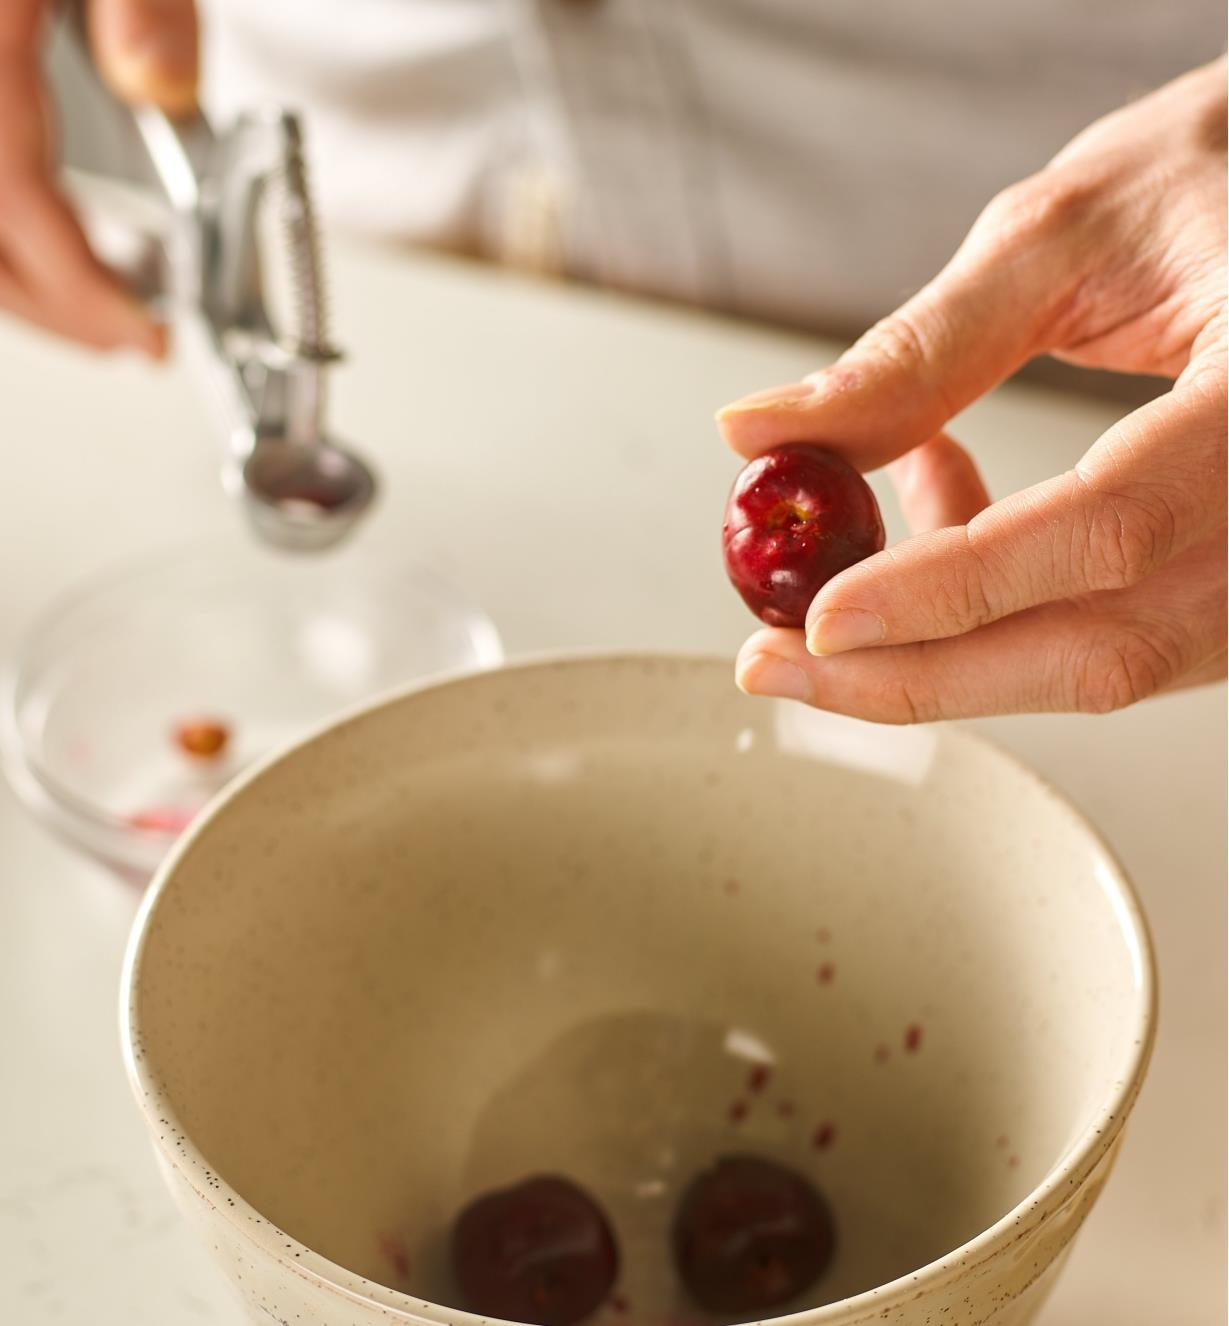 Close-up view of a cherry after removing the pit with the olive and cherry pitter